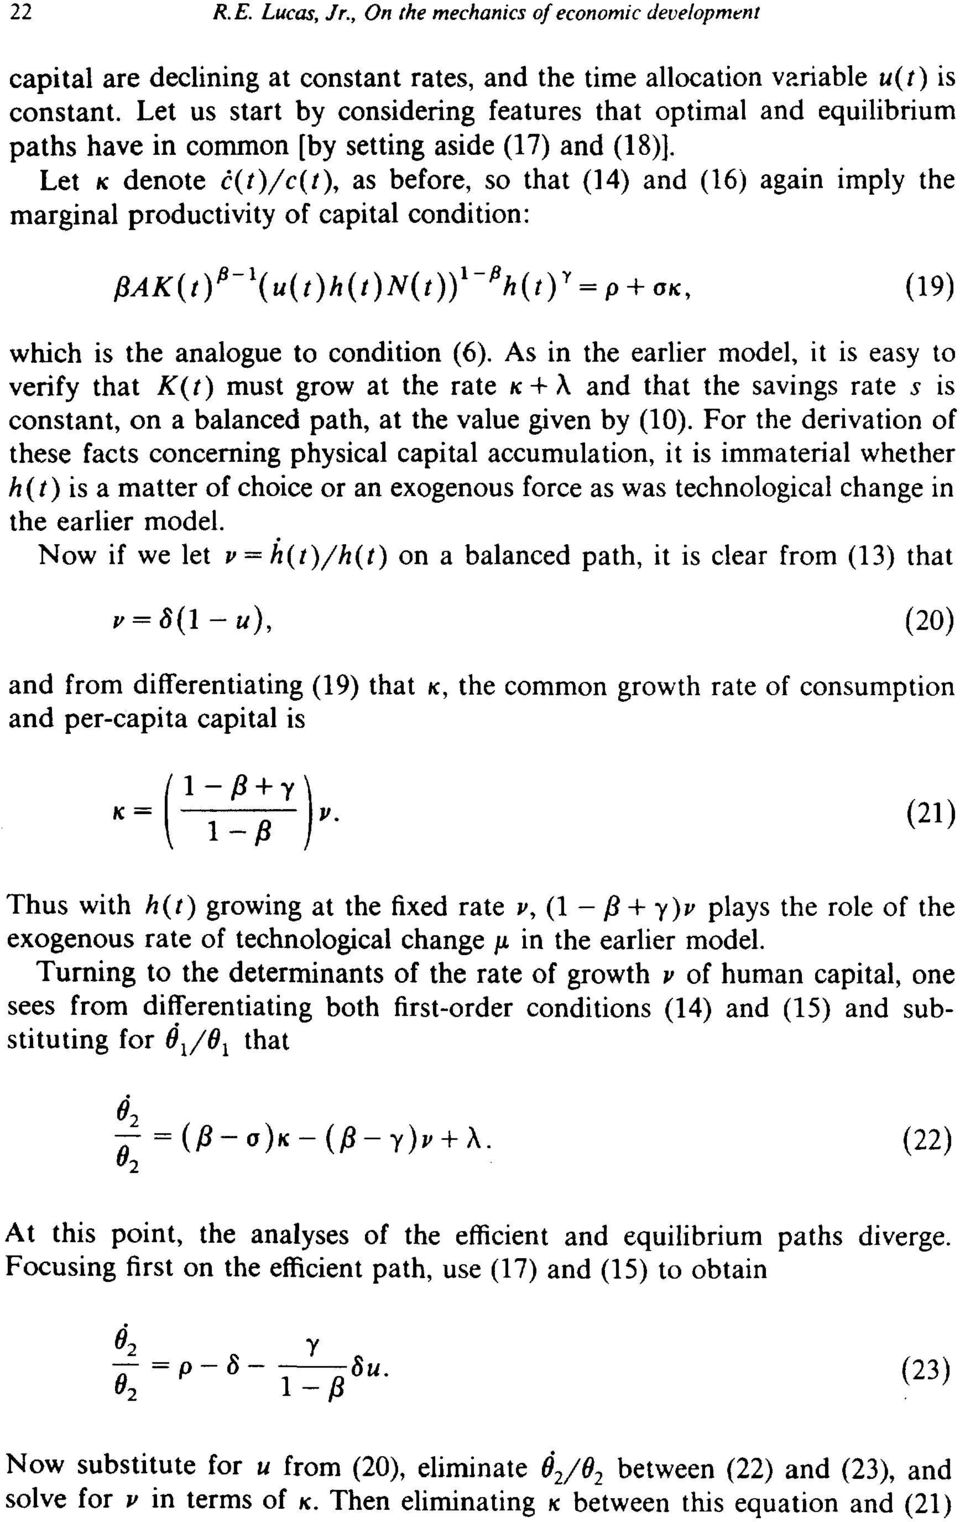 Let K denote c(t)/c(t), as before, so that (14) and (16) again imply the marginal productivity of capital condition: f3a K ( t ) P- 1( U ( t ) h ( t ) N ( t ))1 - Ph ( t ) Y = P+ ak, (19) which is